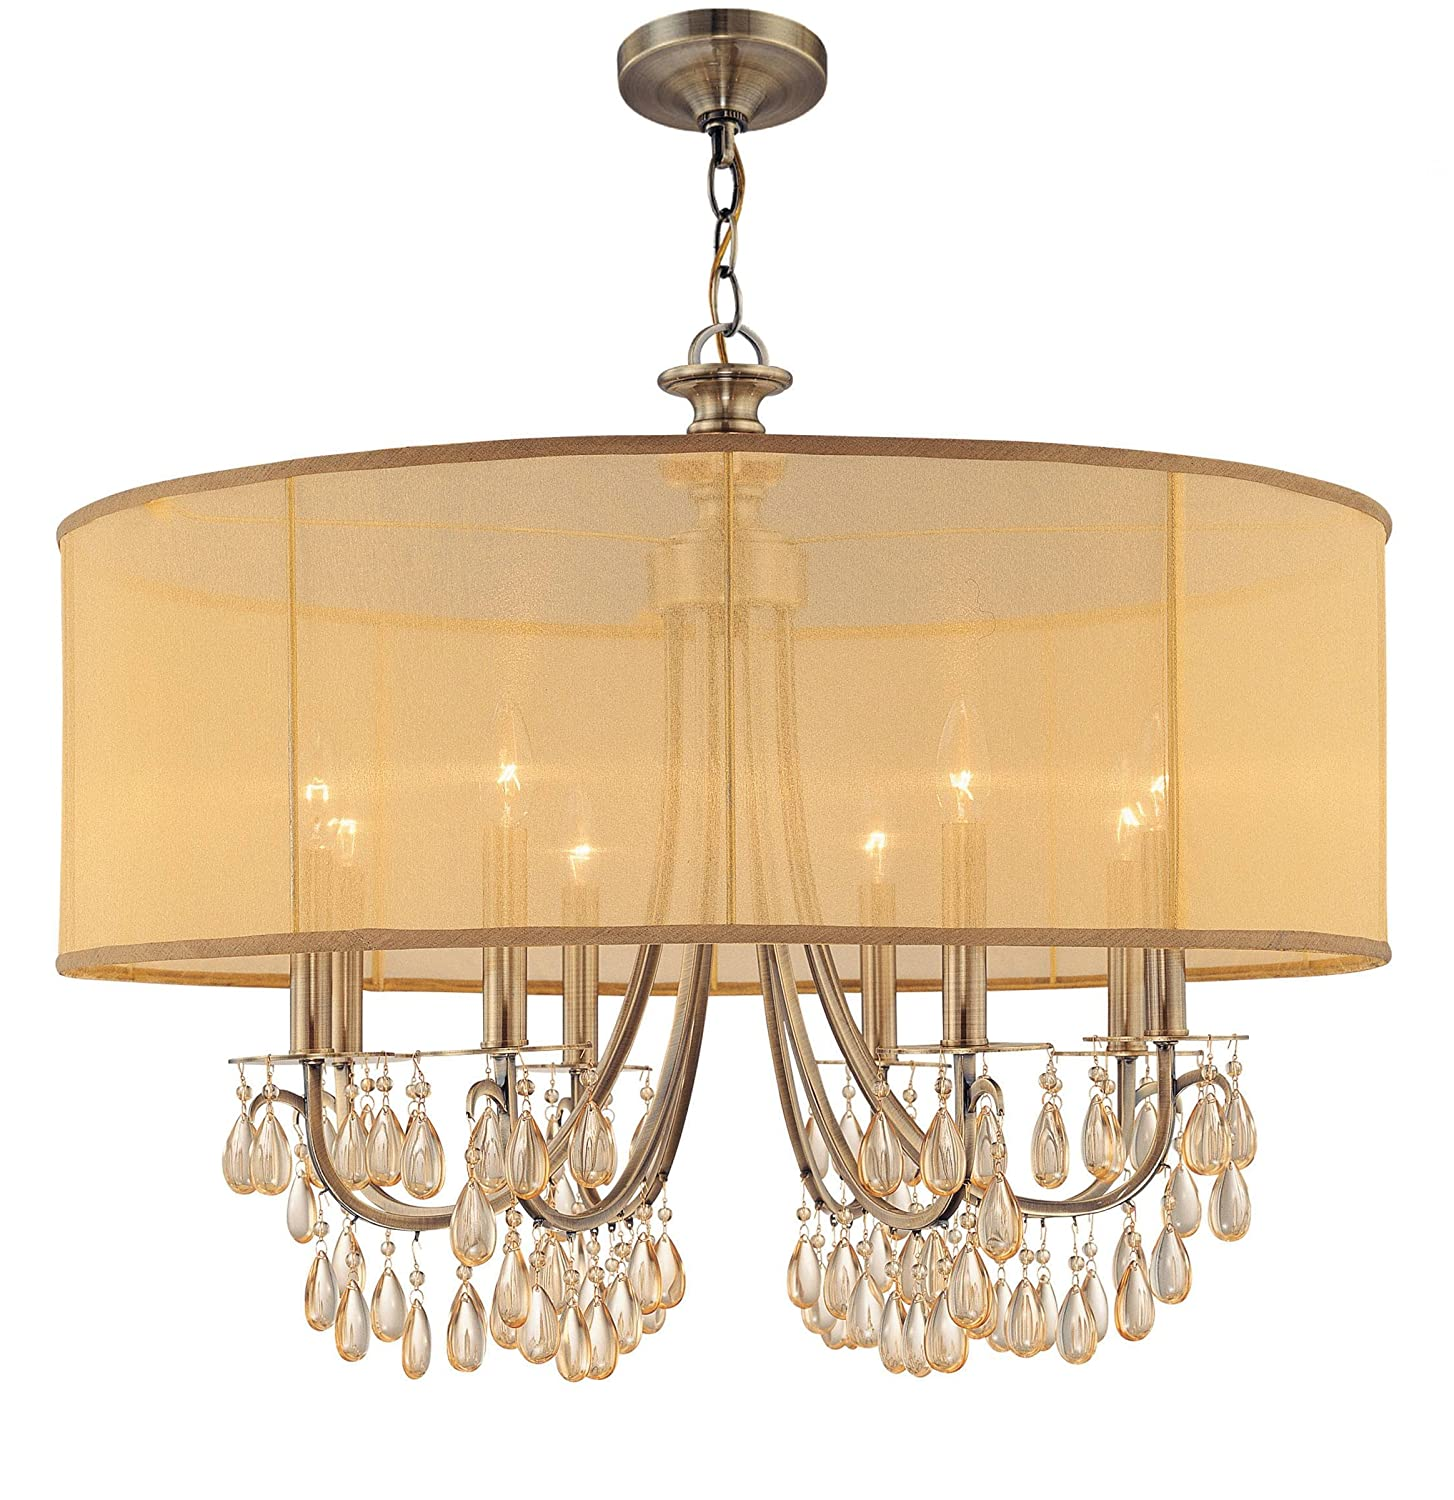 Crystorama 5628-AB Crystal Accents Eight Light Chandeliers from Hampton  collection in Brass-Antiquefinish, - - Amazon.com - Crystorama 5628-AB Crystal Accents Eight Light Chandeliers From